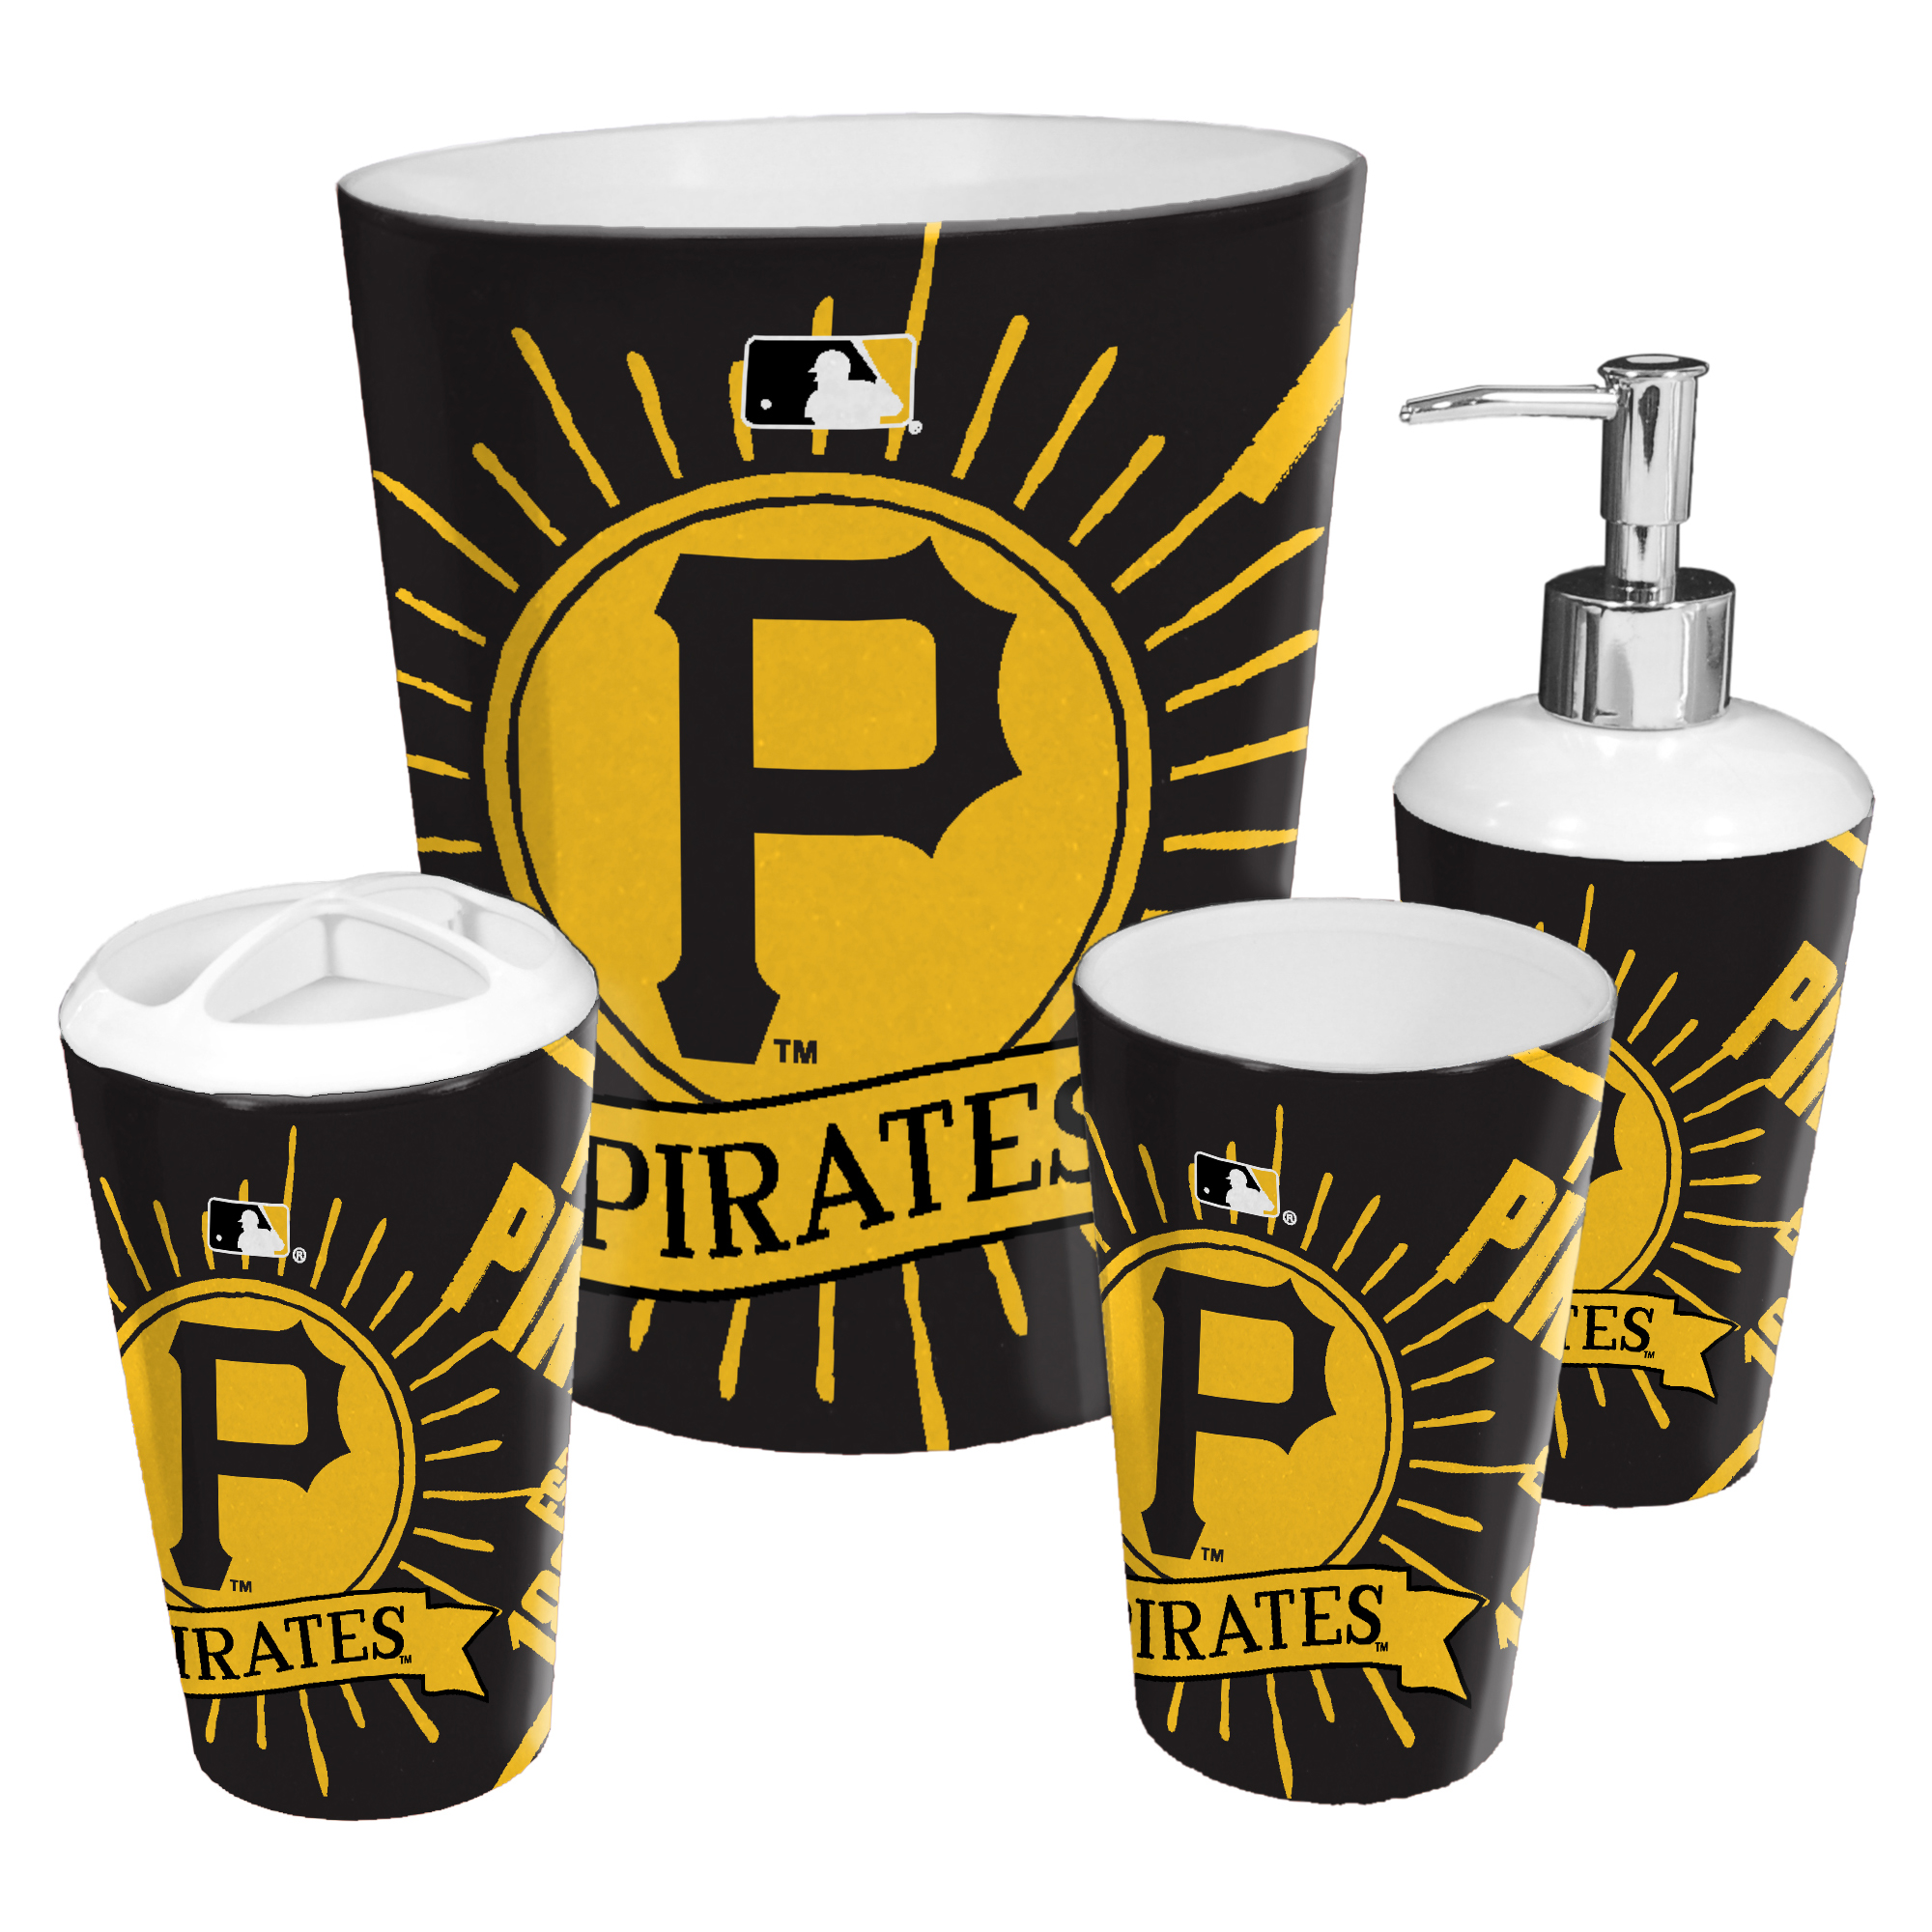 Pittsburgh Pirates The Northwest Company 4-Piece Bath Set - No Size